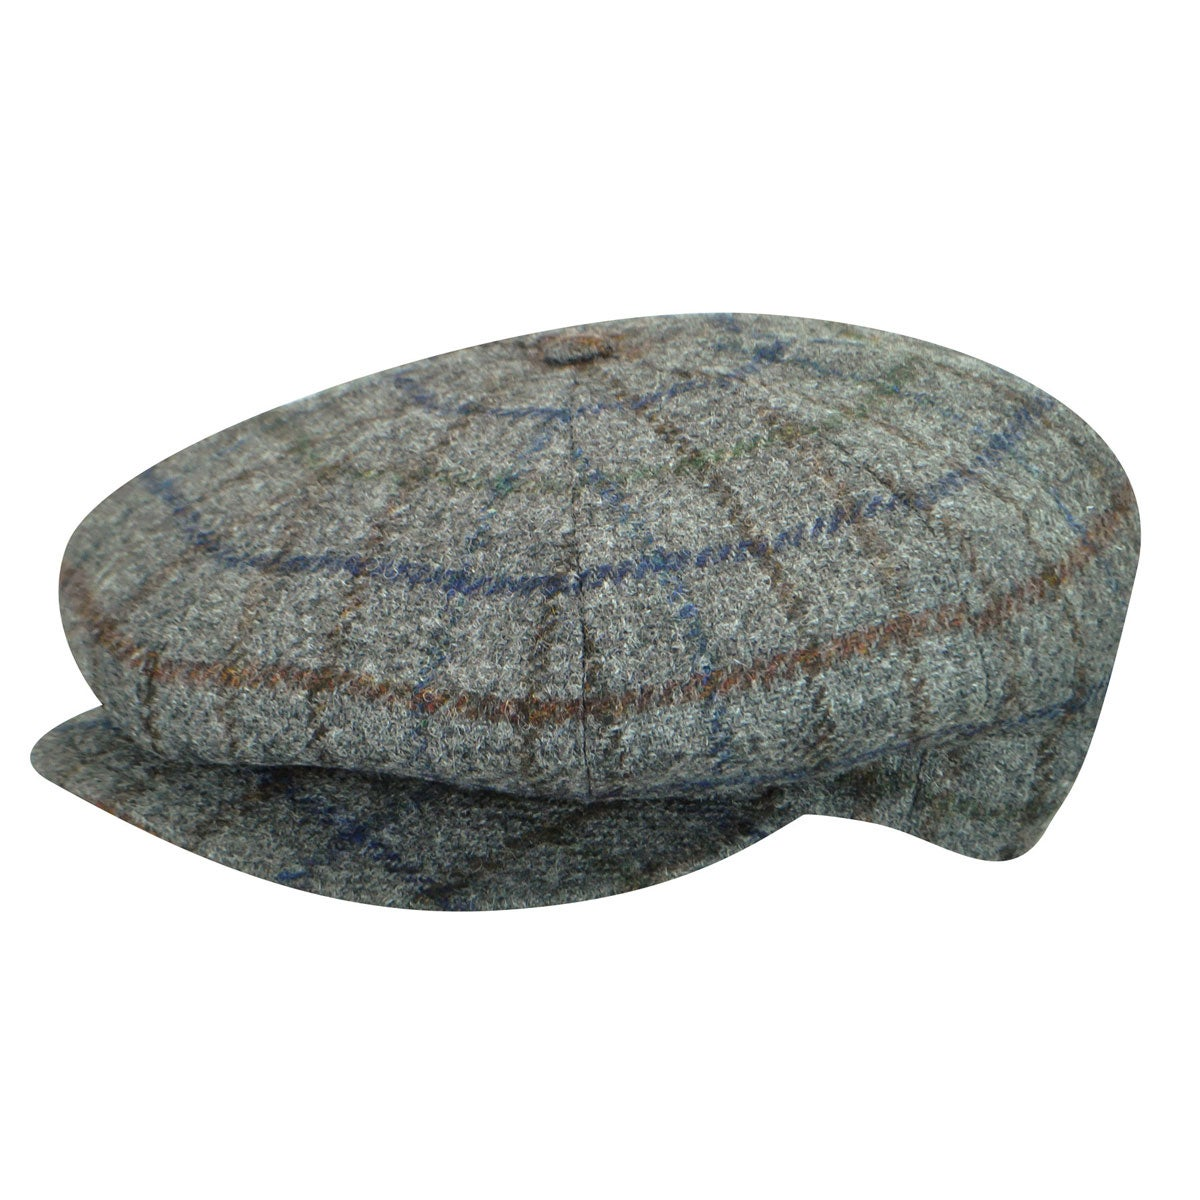 1930s Mens Hat Fashion Wool Newsboy Cap $125.00 AT vintagedancer.com